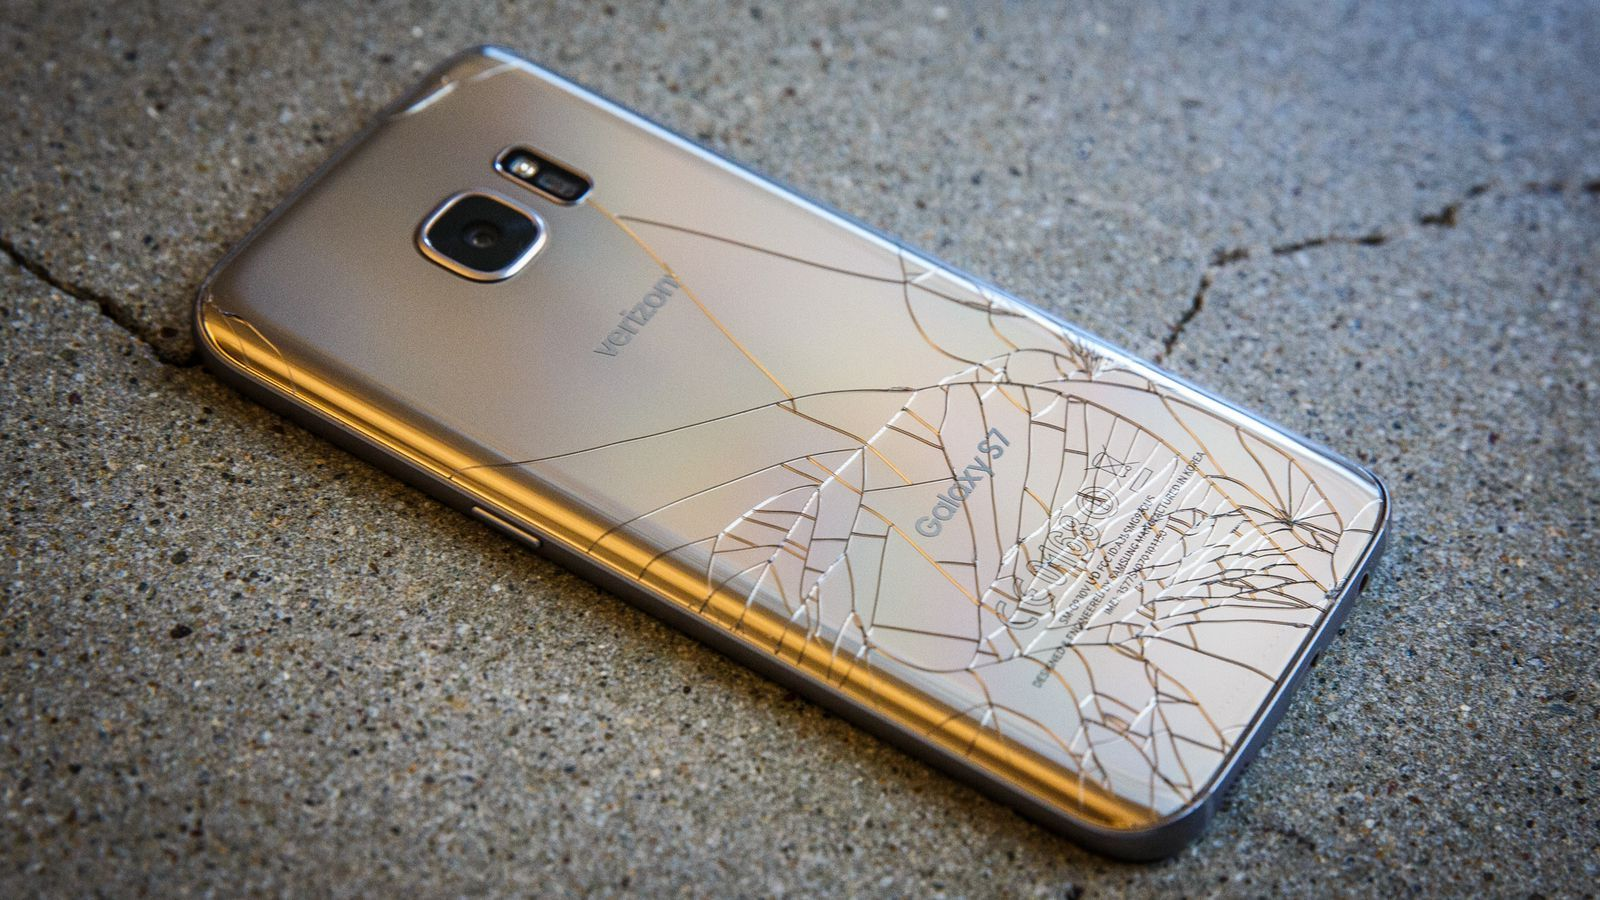 Samsung Repair Service In Albany At Low Cost Nz Smartphone Repair Samsung Samsung Galaxy Phone